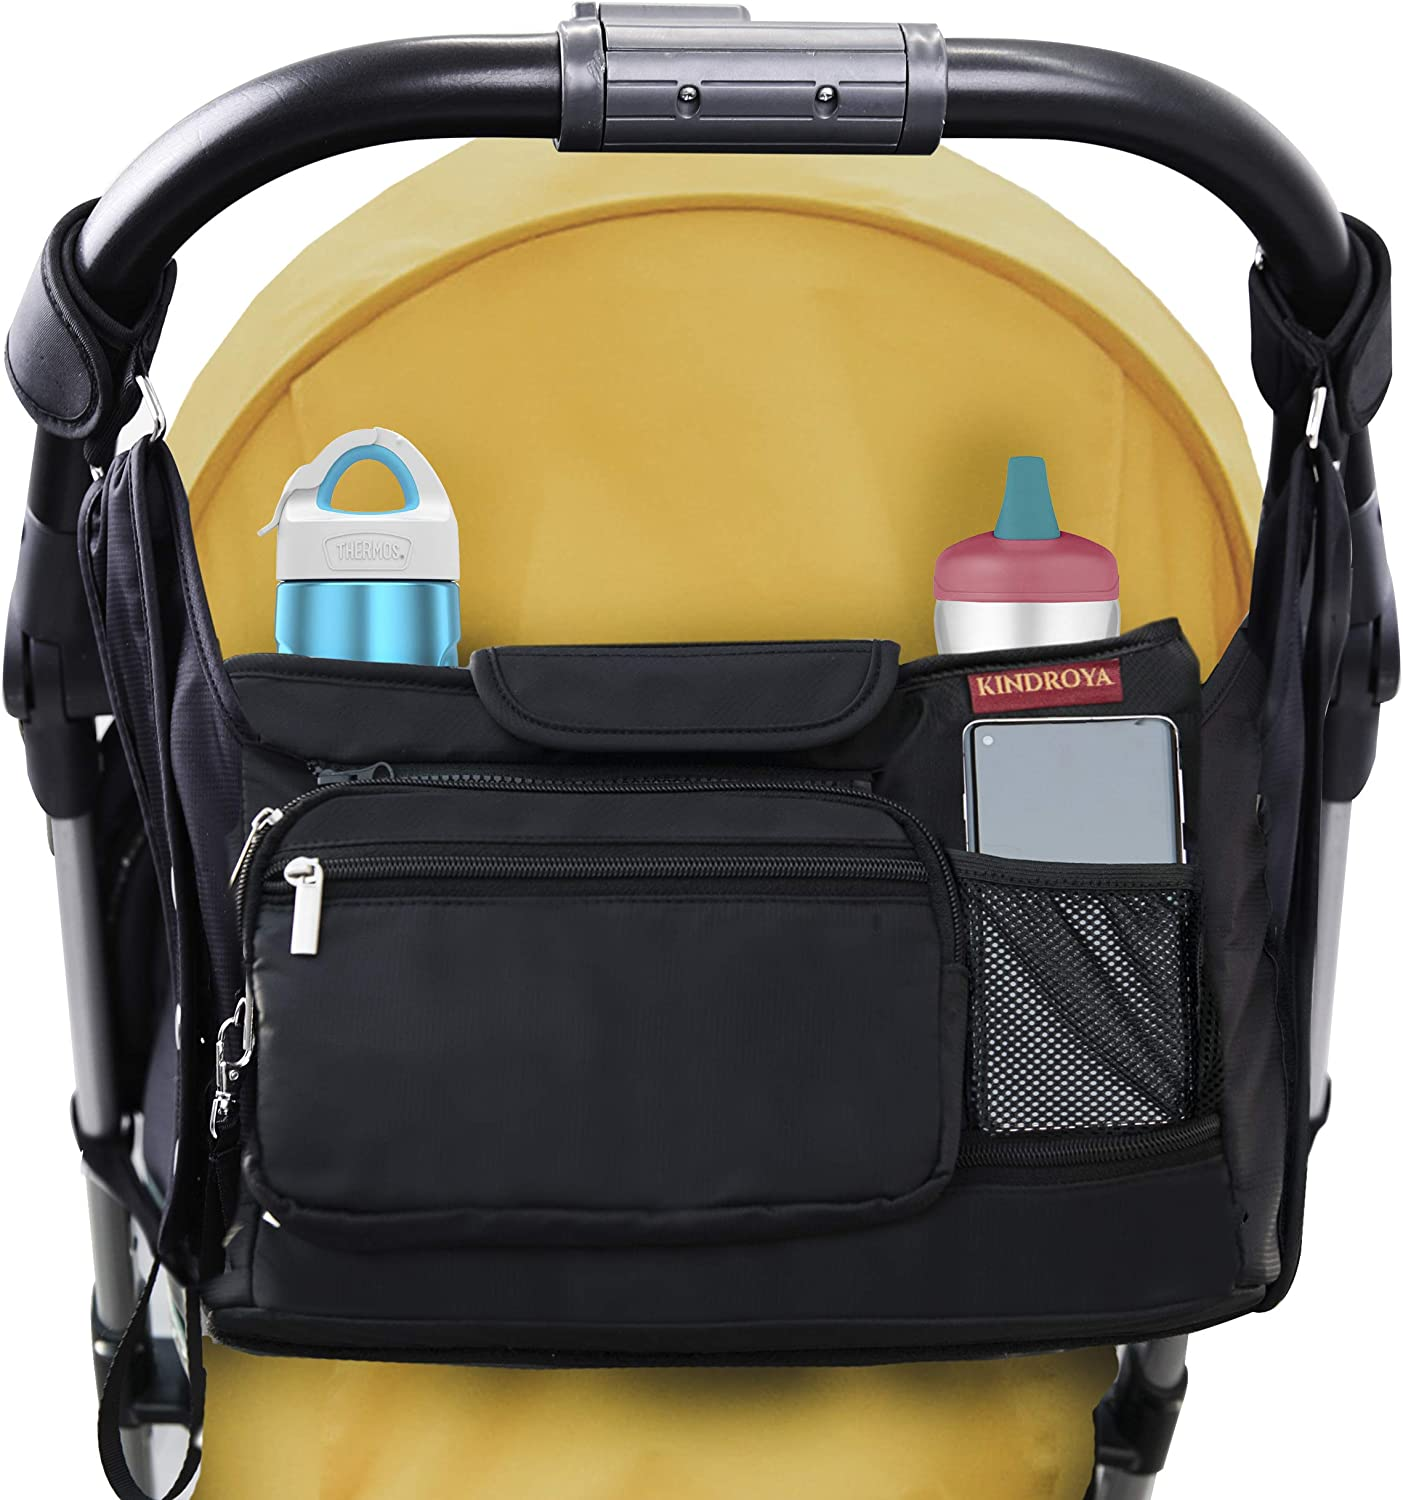 Kindroya Universal Stroller Organizer Bag- Extra Storage, Dual Locking Mechanism, Larger Insulated Cup Holders, Non-Slip straps, Detachable Mesh and Pouch, Hidden Pockets and Free Diaper Changing Pad.